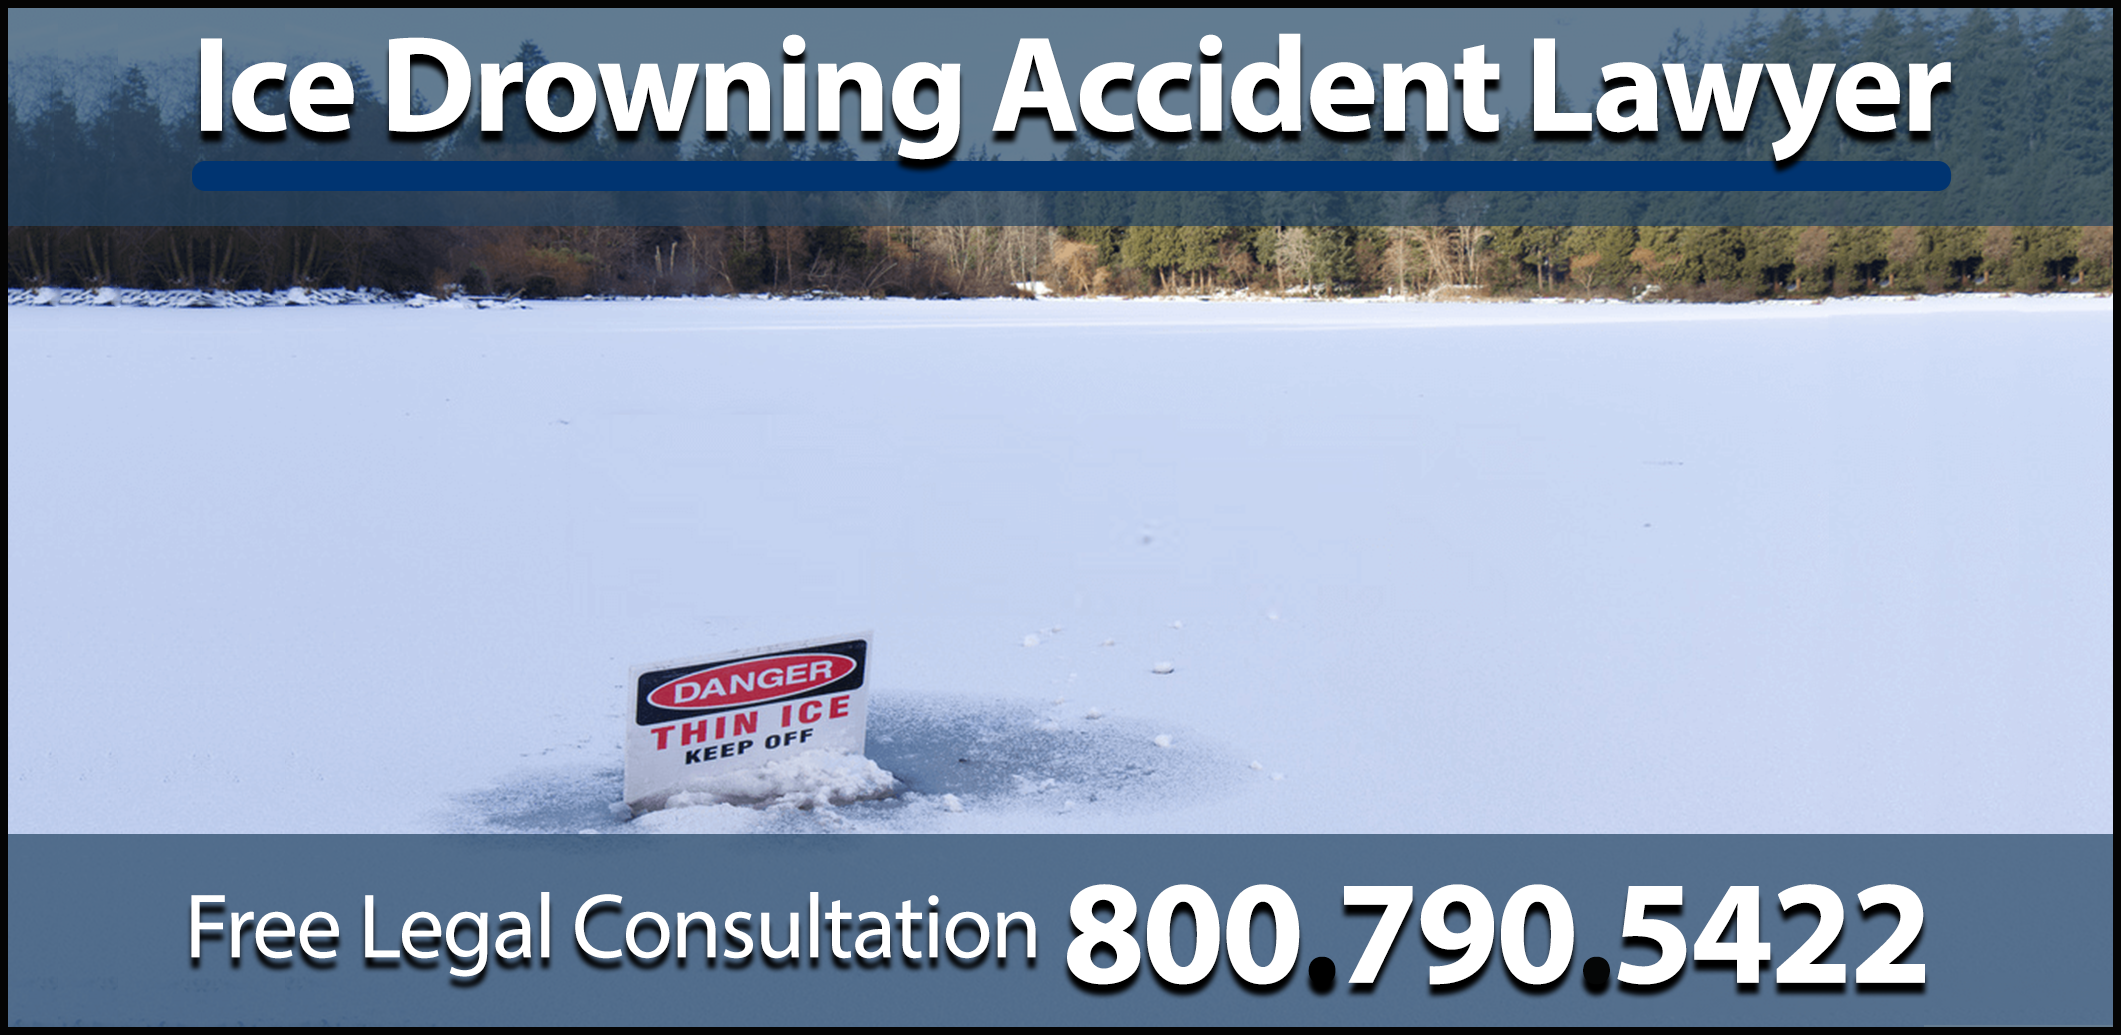 ice drowning accident personal injury attorney freeze hazard danger drowning personal injury attorney sue compensation